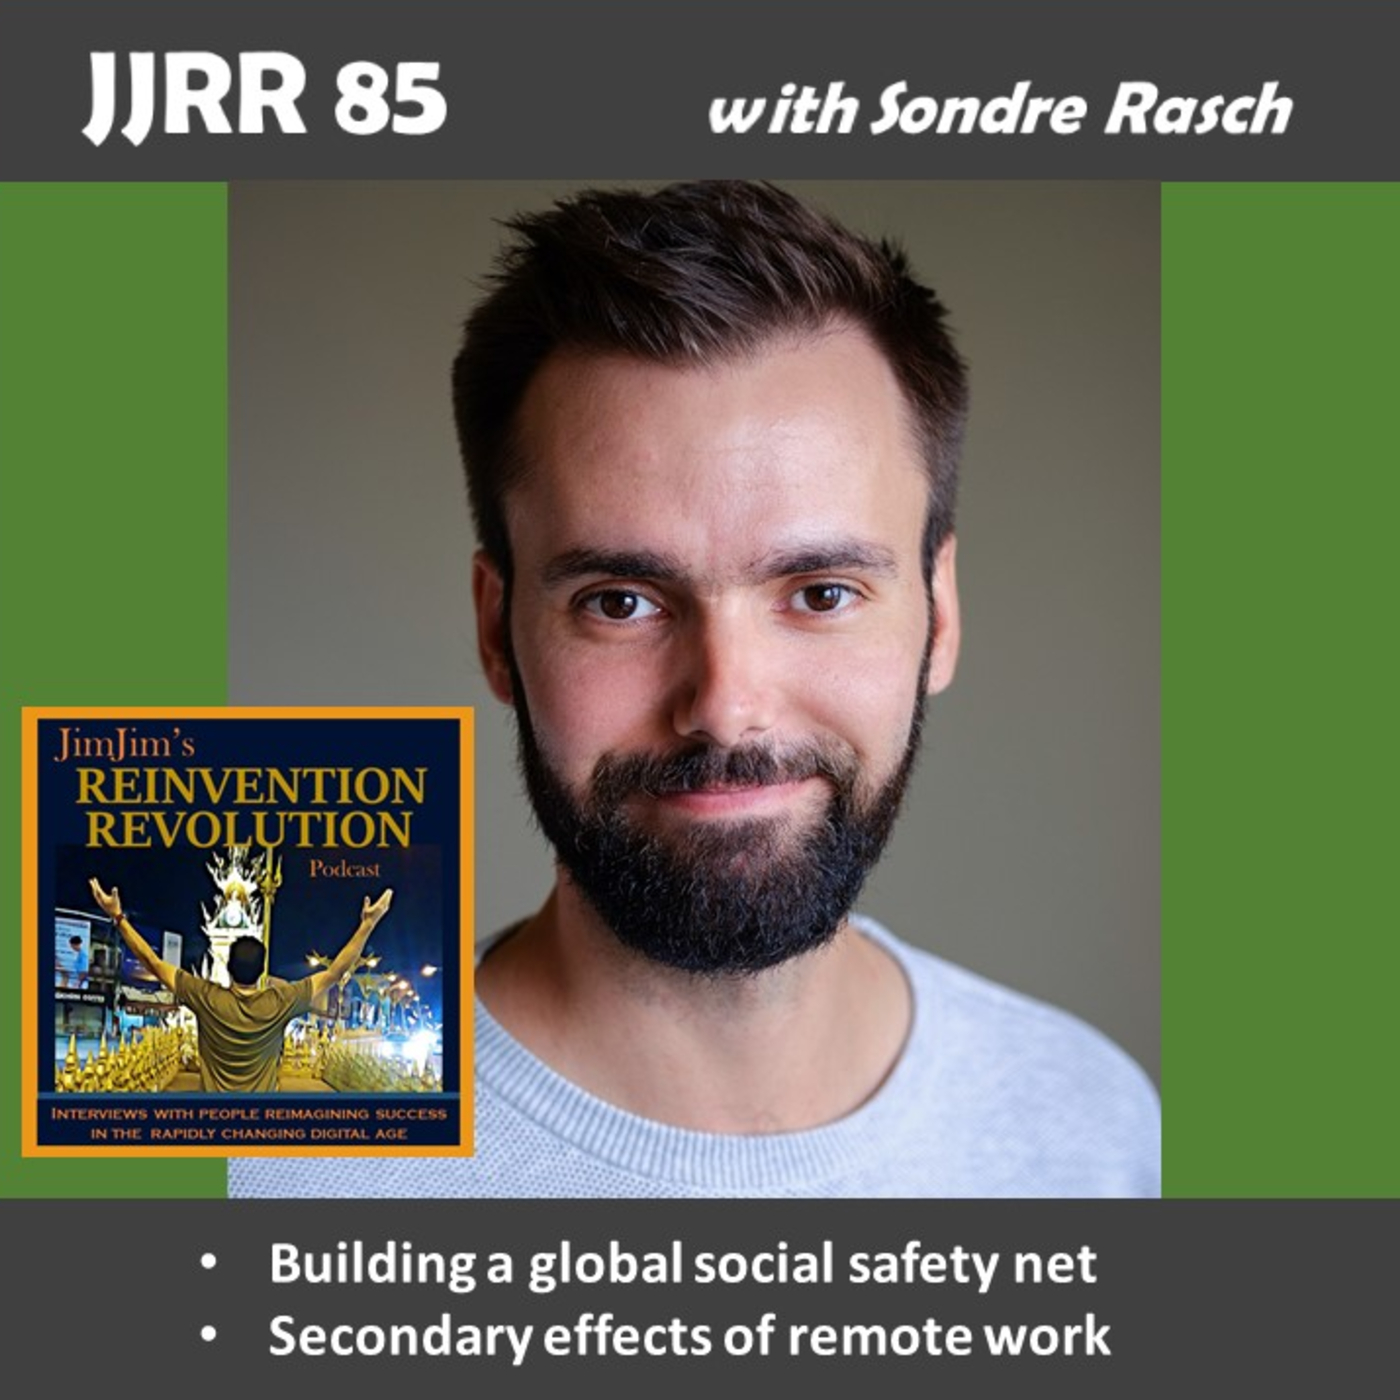 JJRR 85 Building a global social safety net – Secondary effects of remote work – with Sondre Rasch